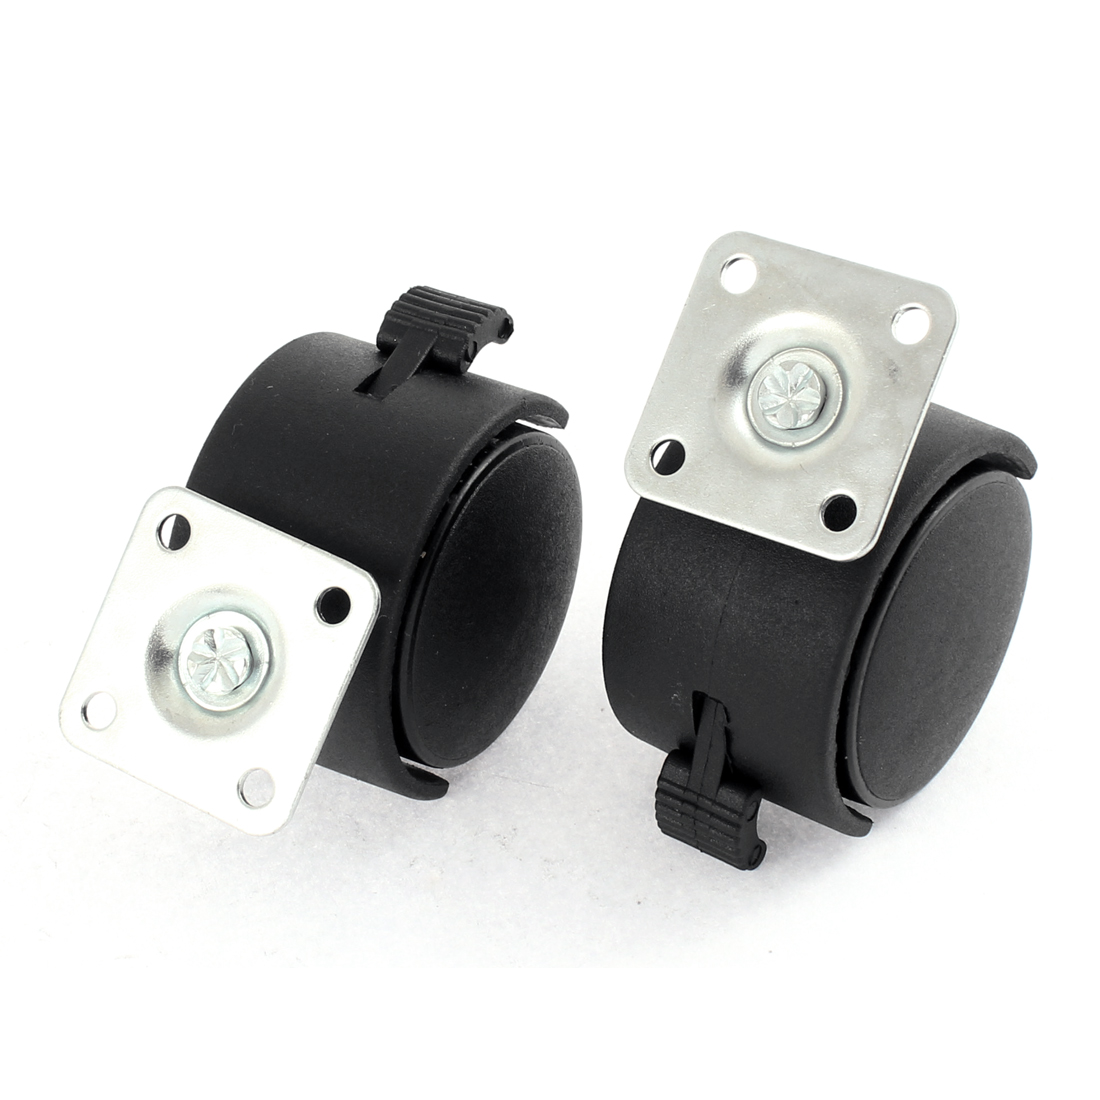 "Furniture Square Top Plate Mount 2"" Dia Wheel Swivel Brake Caster 2 Pcs"